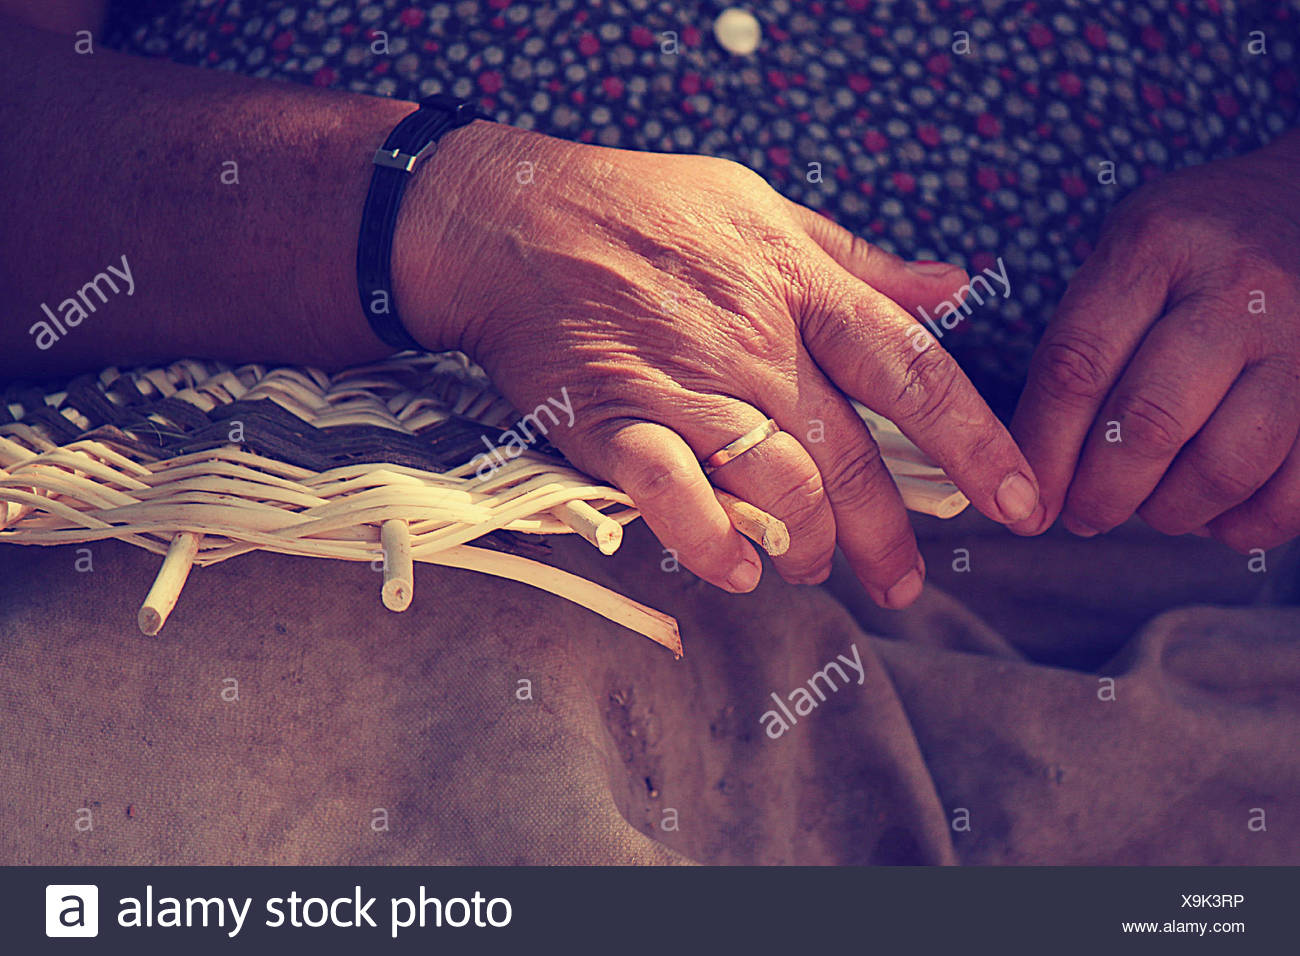 Close up of female hands weaving basket - Stock Image